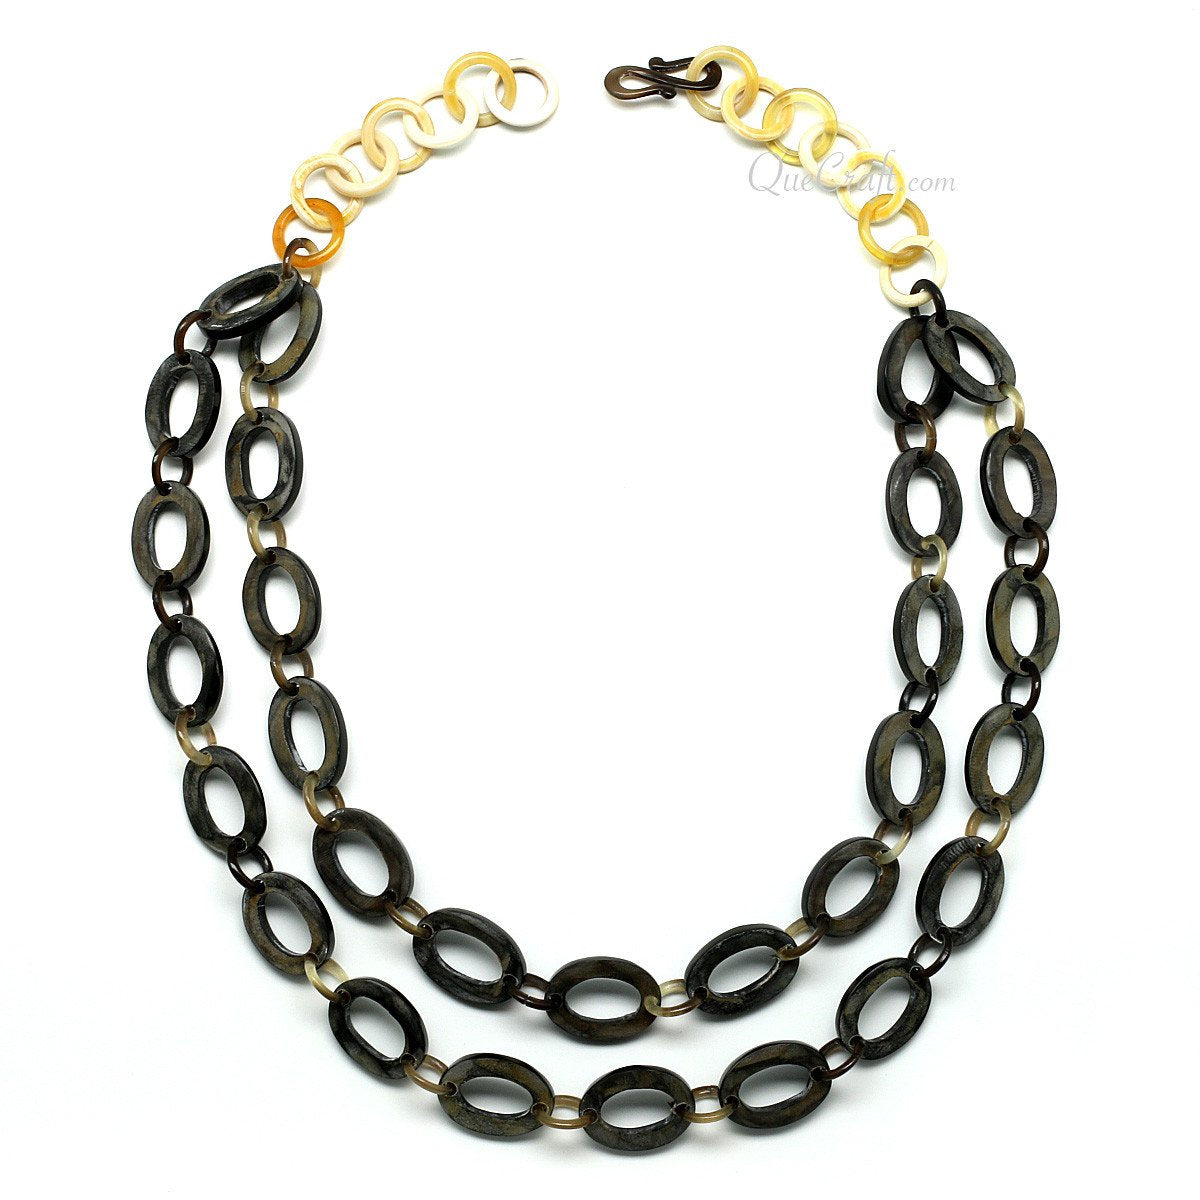 Horn Chain Necklace #11538 - HORN.JEWELRY by QueCraft